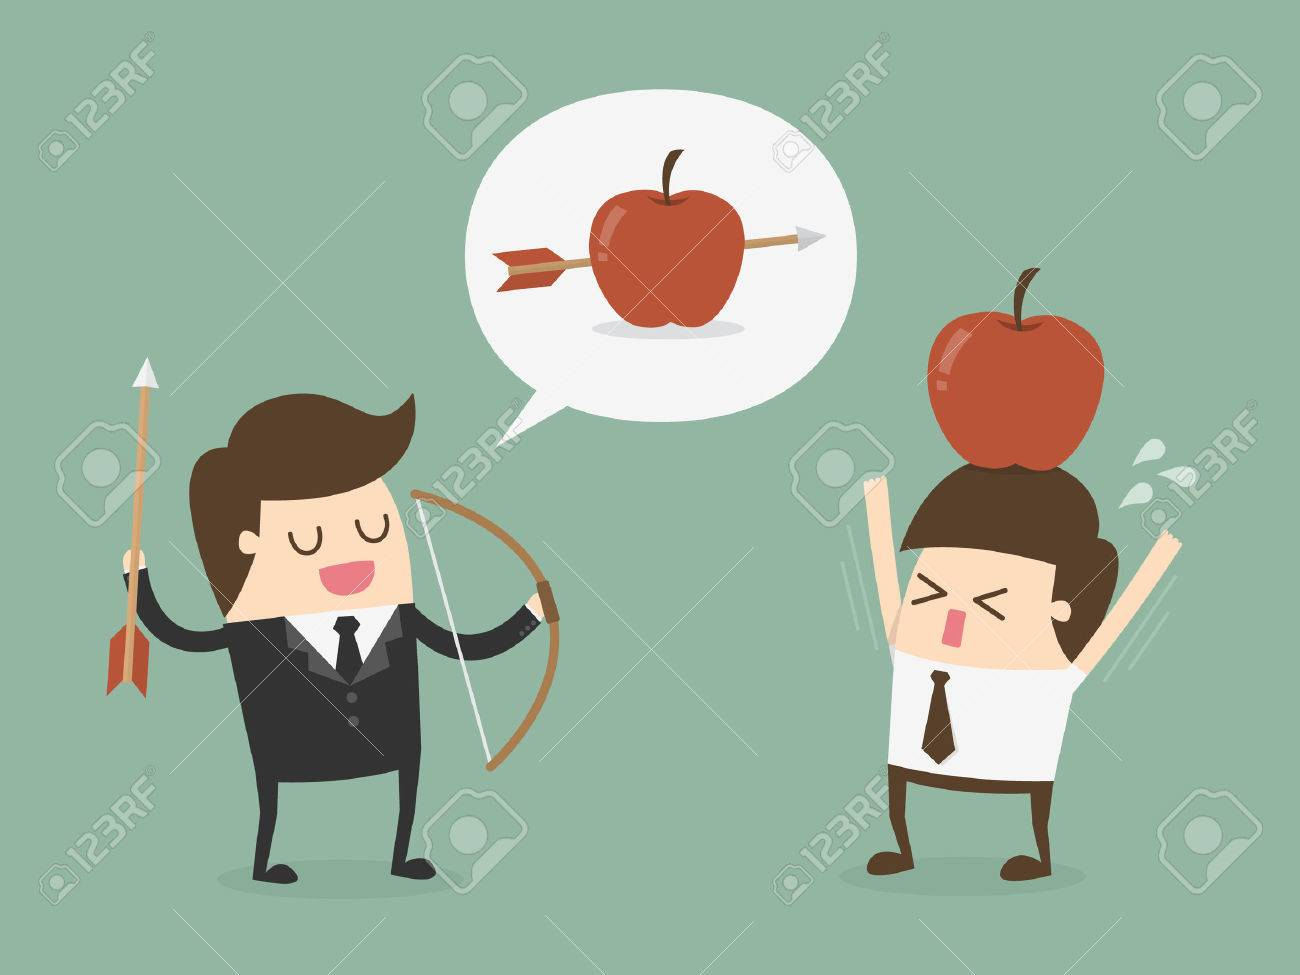 Business target concept. Businessman shooting an apple on top of colleague - 54429699